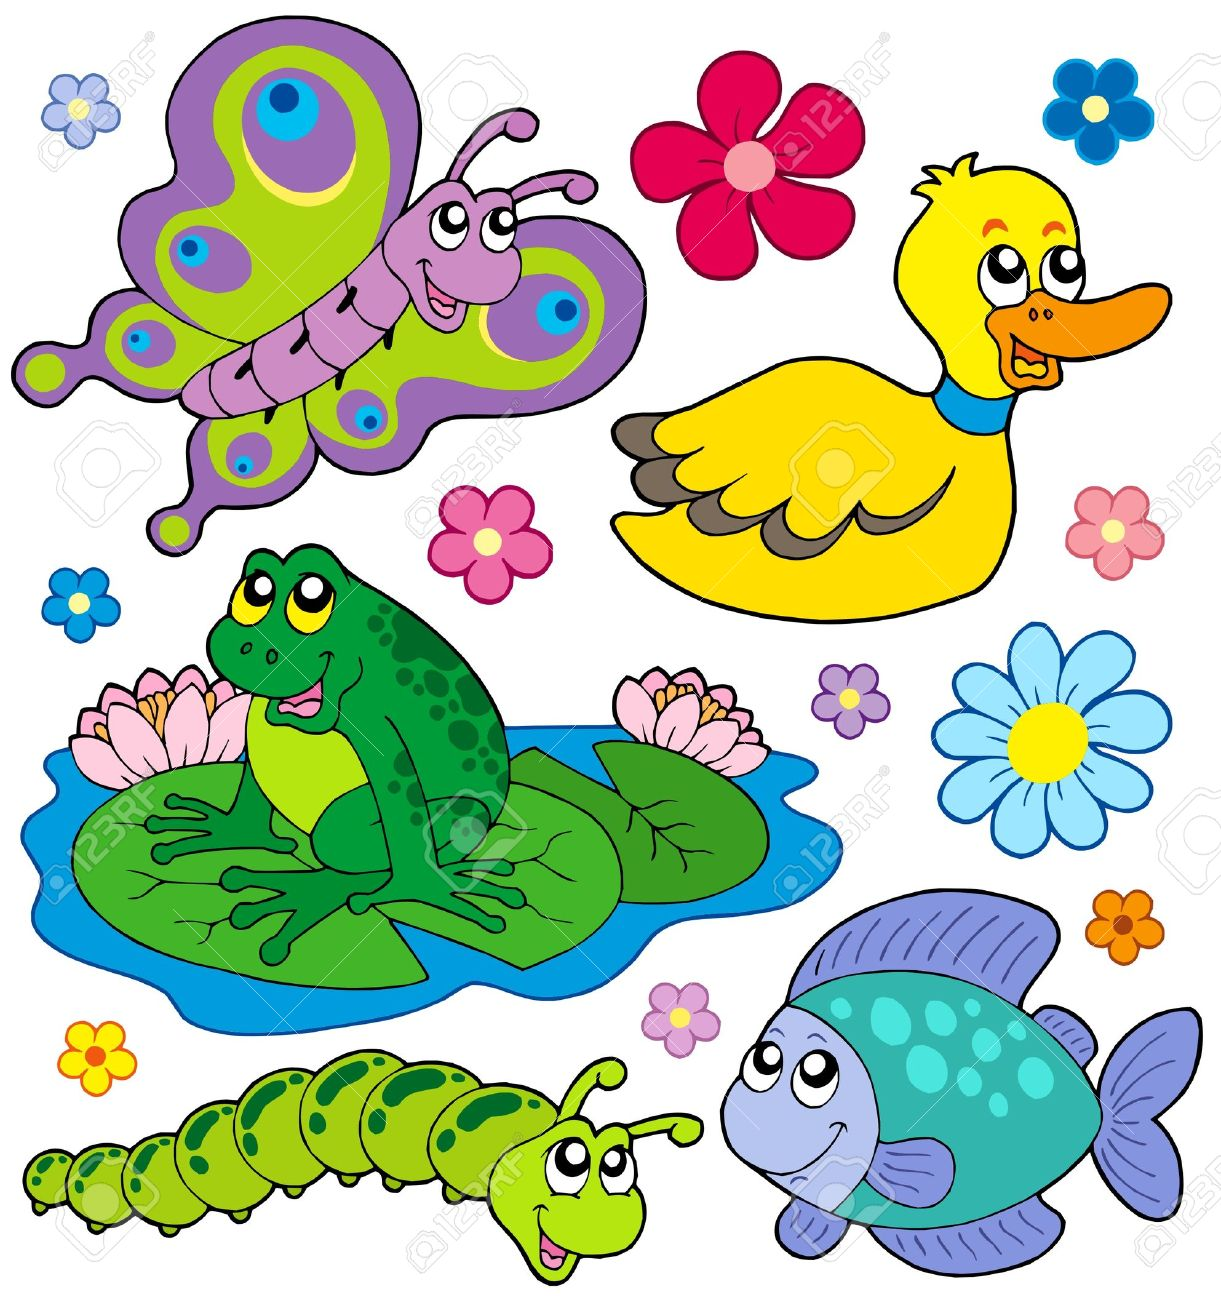 Small animals collection 8 - vector illustration. Stock Vector - 4946828